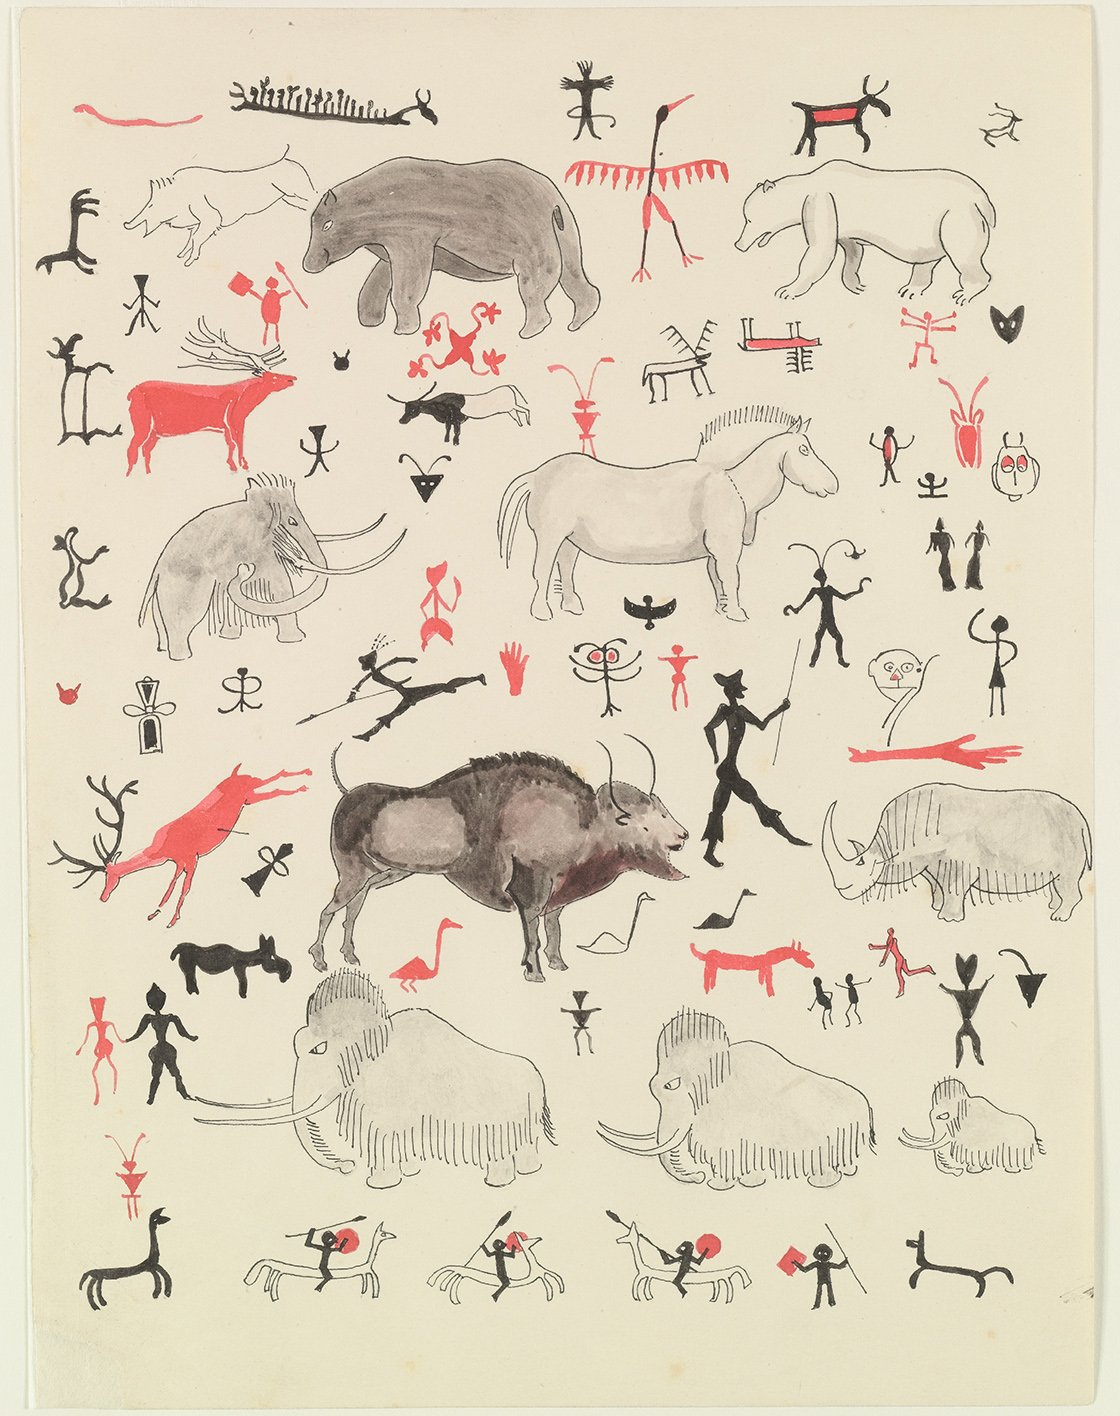 Cave drawings, 1932: 'Polar Bear himself was astonished when I brought light; for the most remarkable thing is that the walls of these caves are all covered with pictures, cut into the rock or painted on in red and brown and black. Some of them are very good (mostly of animals), and some are queer and some bad; and there are many strange marks, signs and scribbles, some of which have a nasty look.' (Copyright The Tolkien Estate Ltd, 1976.)